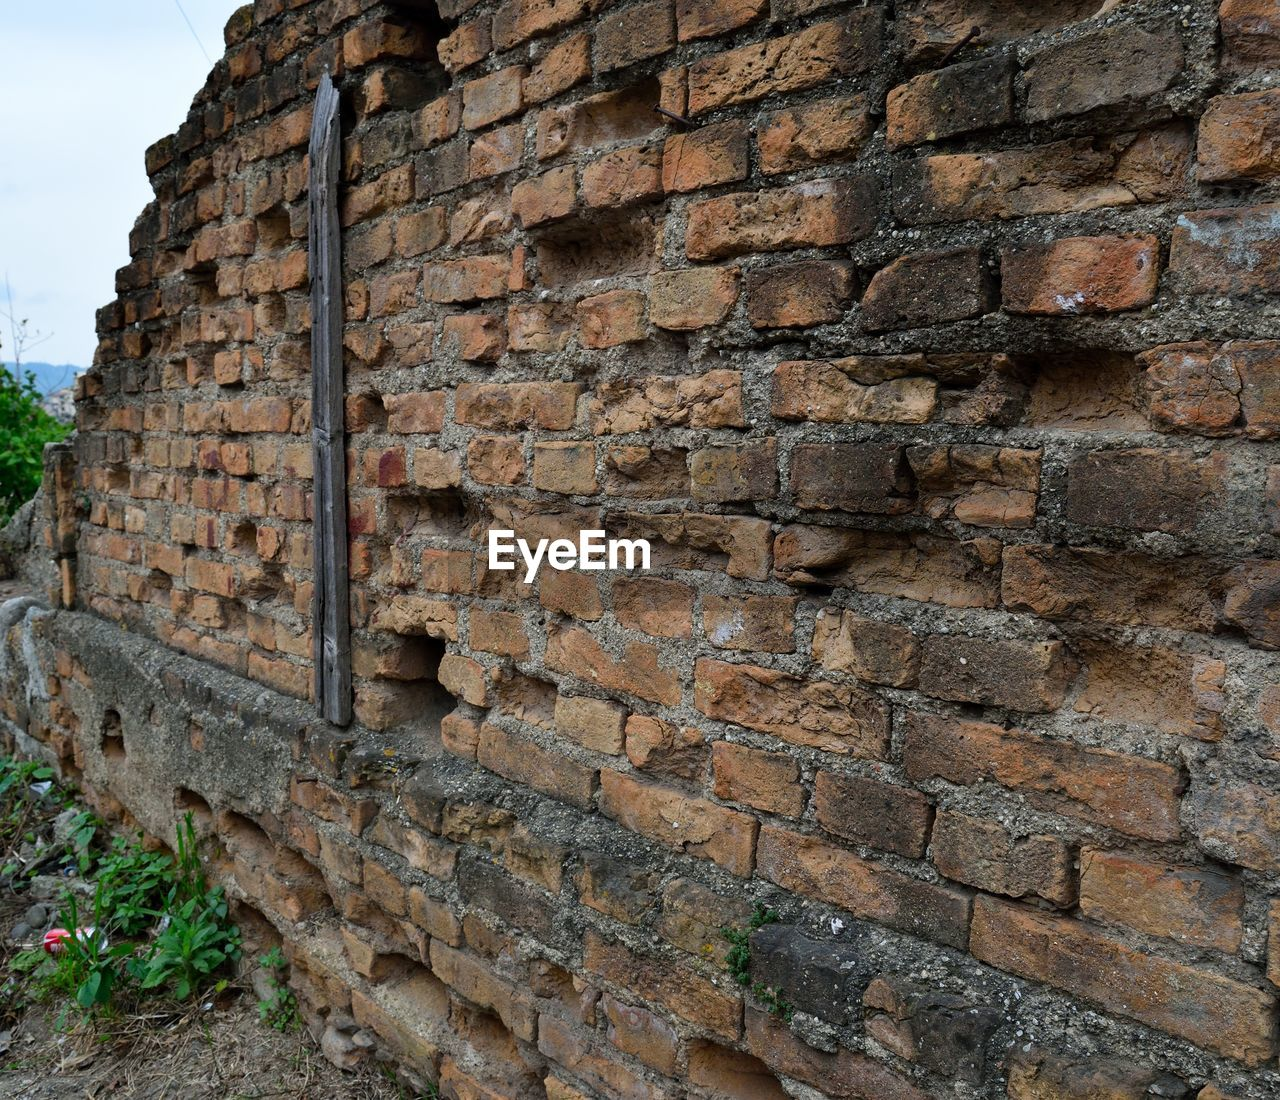 brick wall, architecture, built structure, building exterior, outdoors, history, day, no people, old ruin, close-up